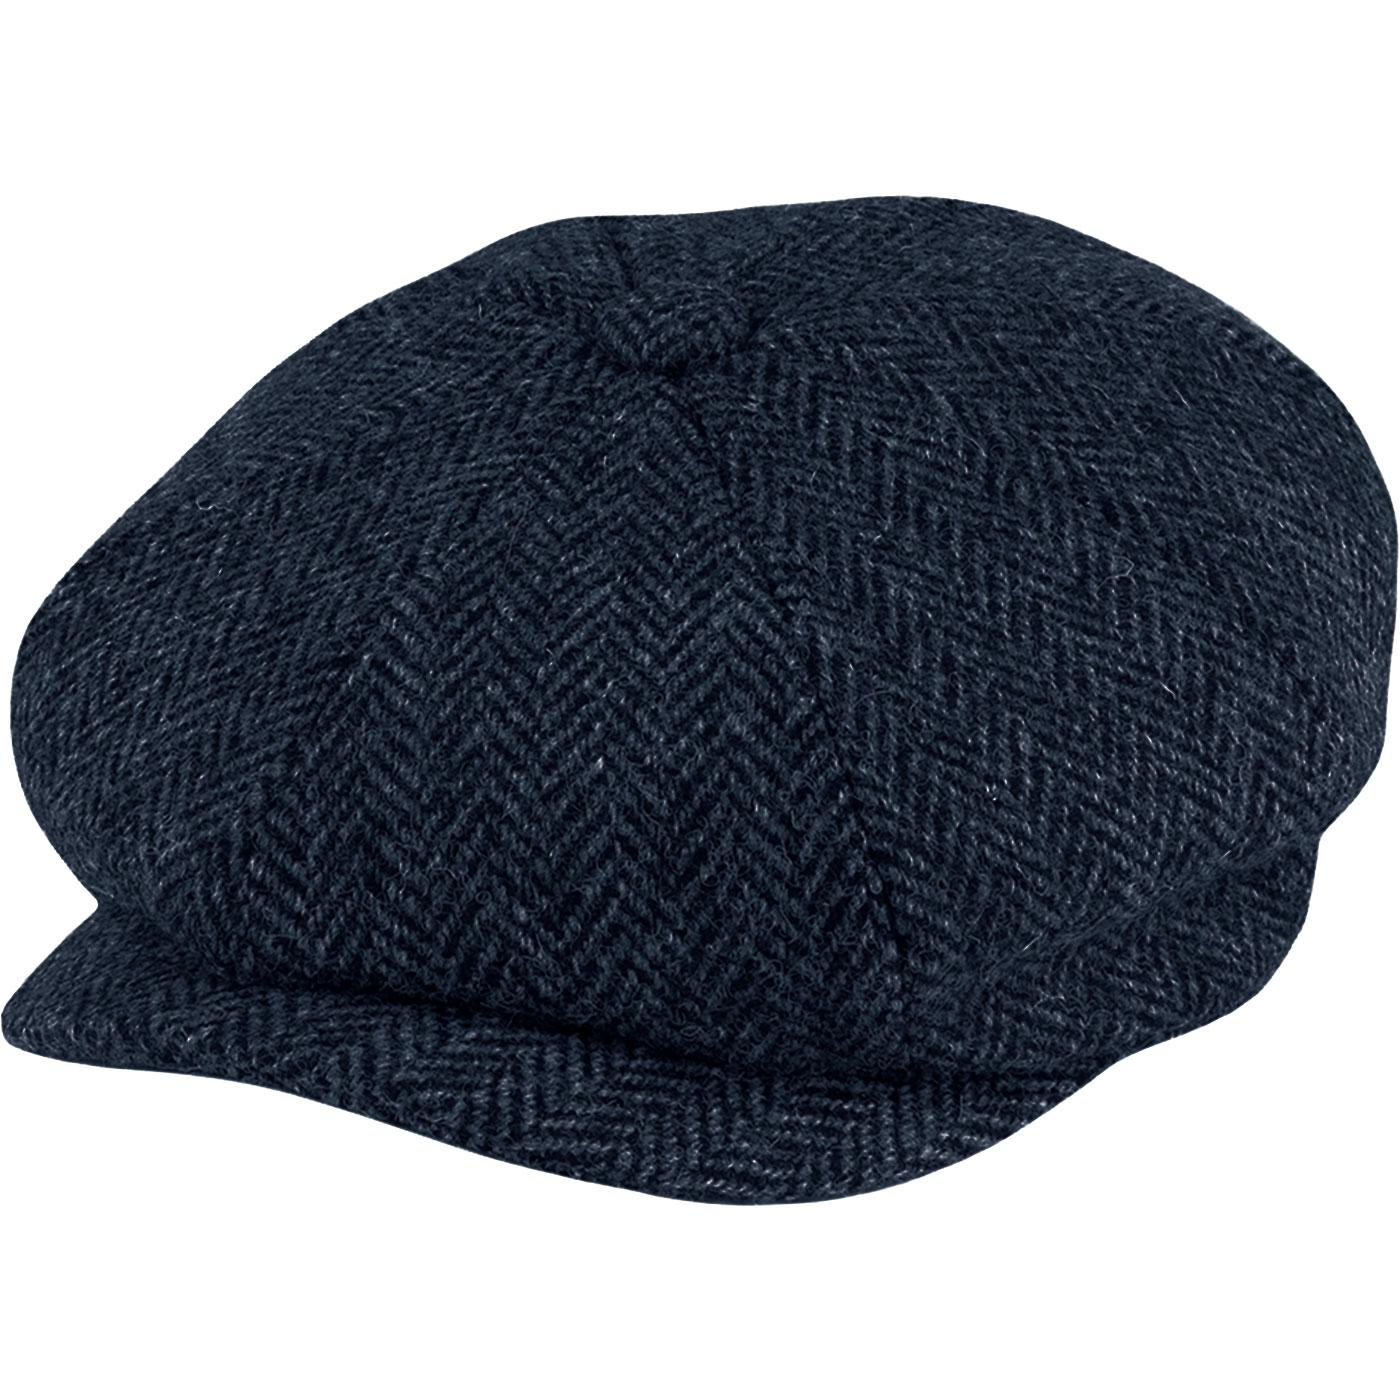 5ad91f73e9cc68 FAILSWORTH Carloway Harris Tweed Gatsby Cap in Navy